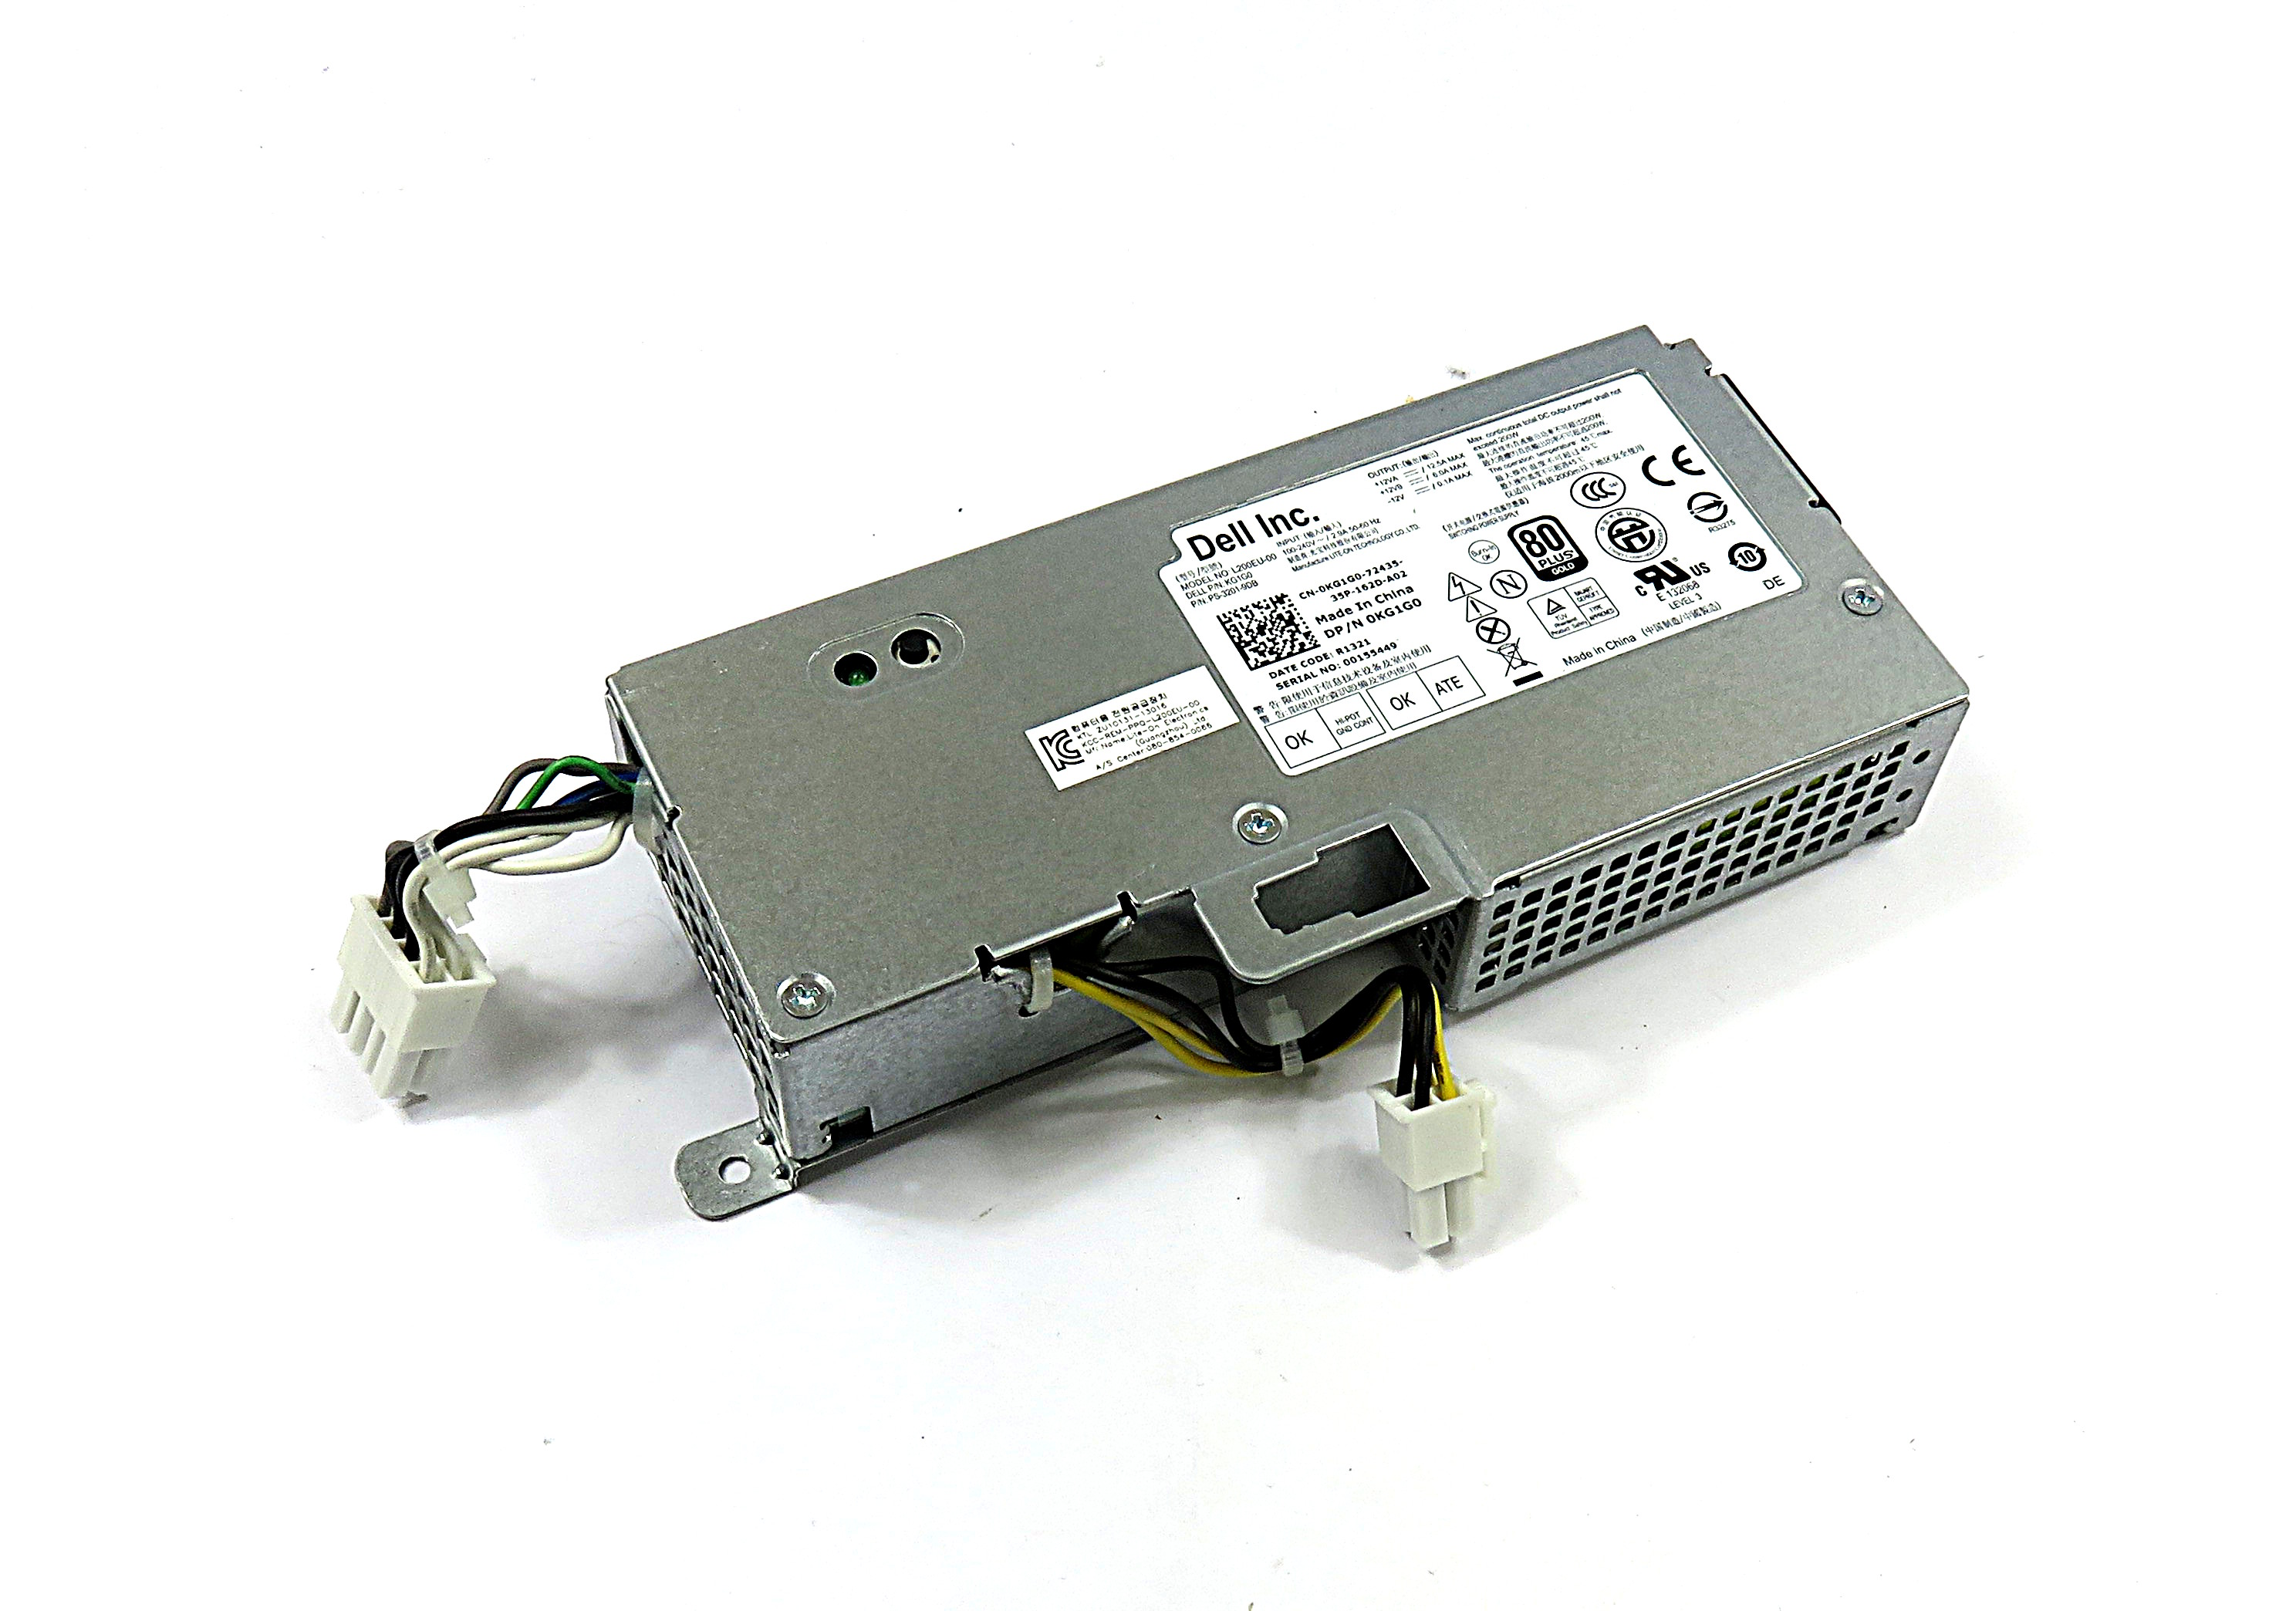 Dell KG1G0 200W Power Supply For OptiPlex 9010 USFF Desktop Computer